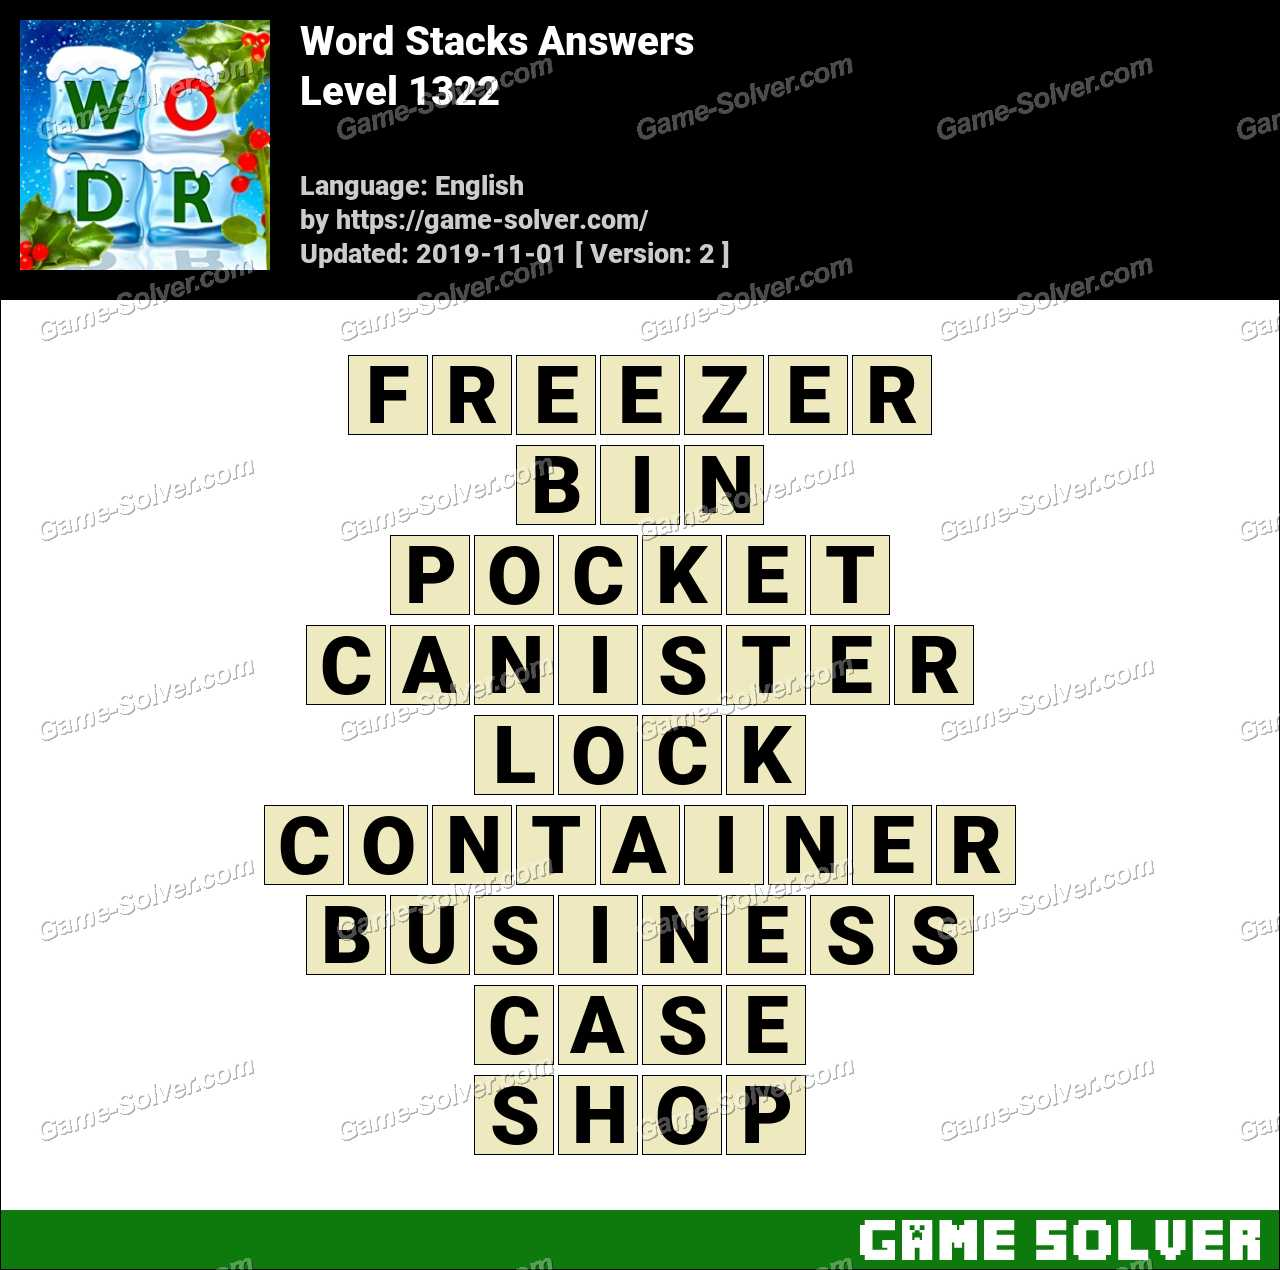 Word Stacks Level 1322 Answers